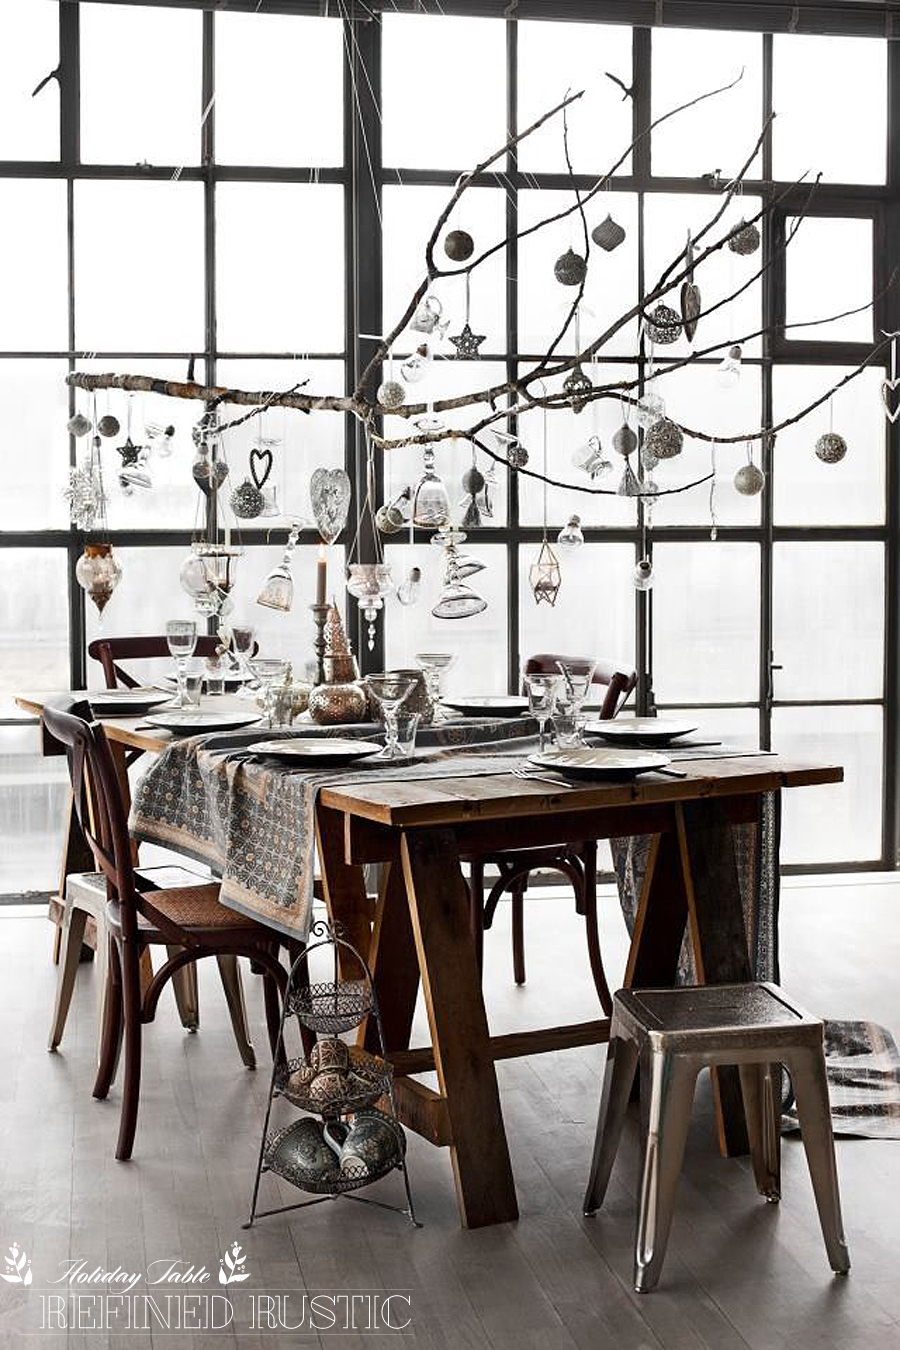 Three Modern Holiday Table Setting Ideas | Refined Rustic | Dine X Design